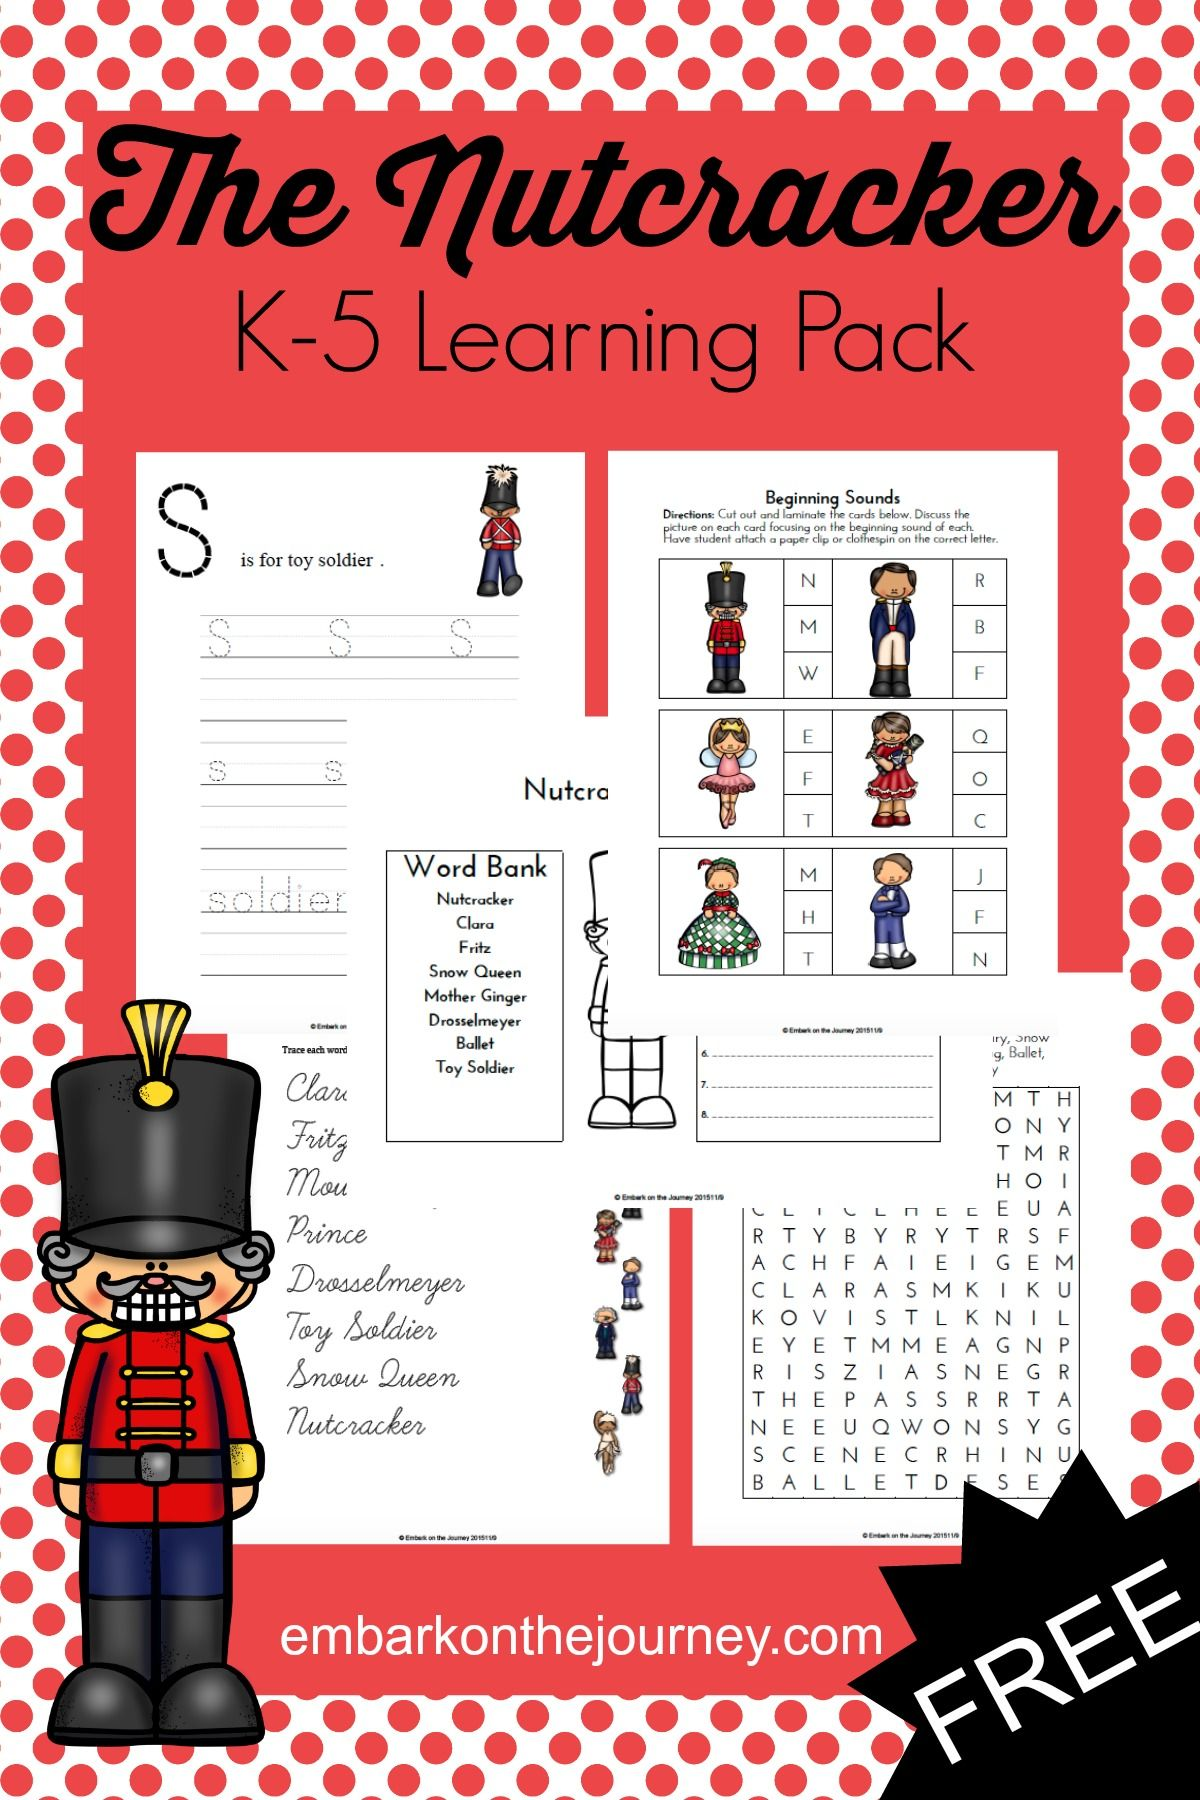 70 Pages Of Nutcracker Printables For Grades K 3